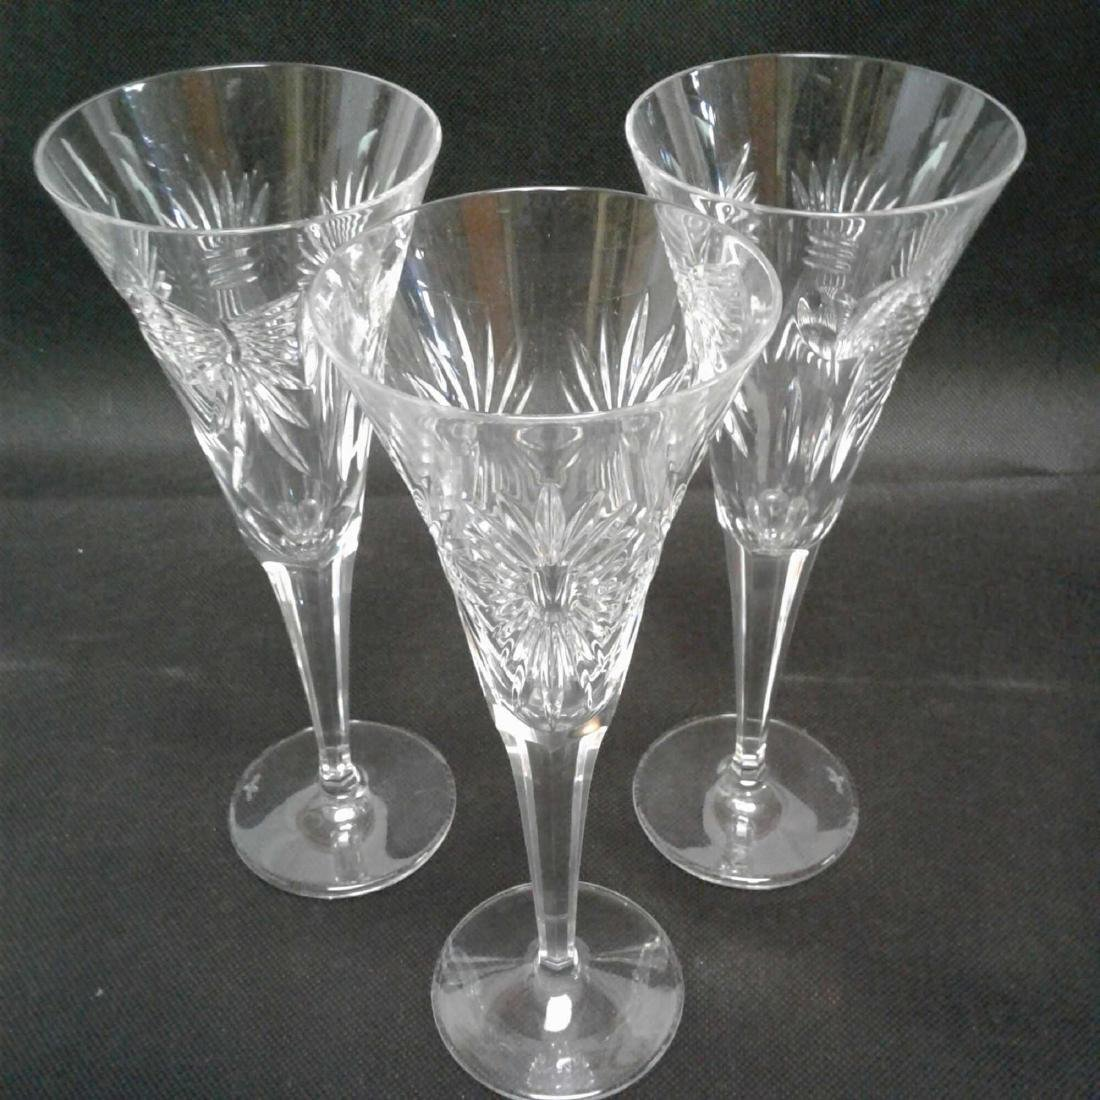 3 Waterford Millennium Toasting Flutes